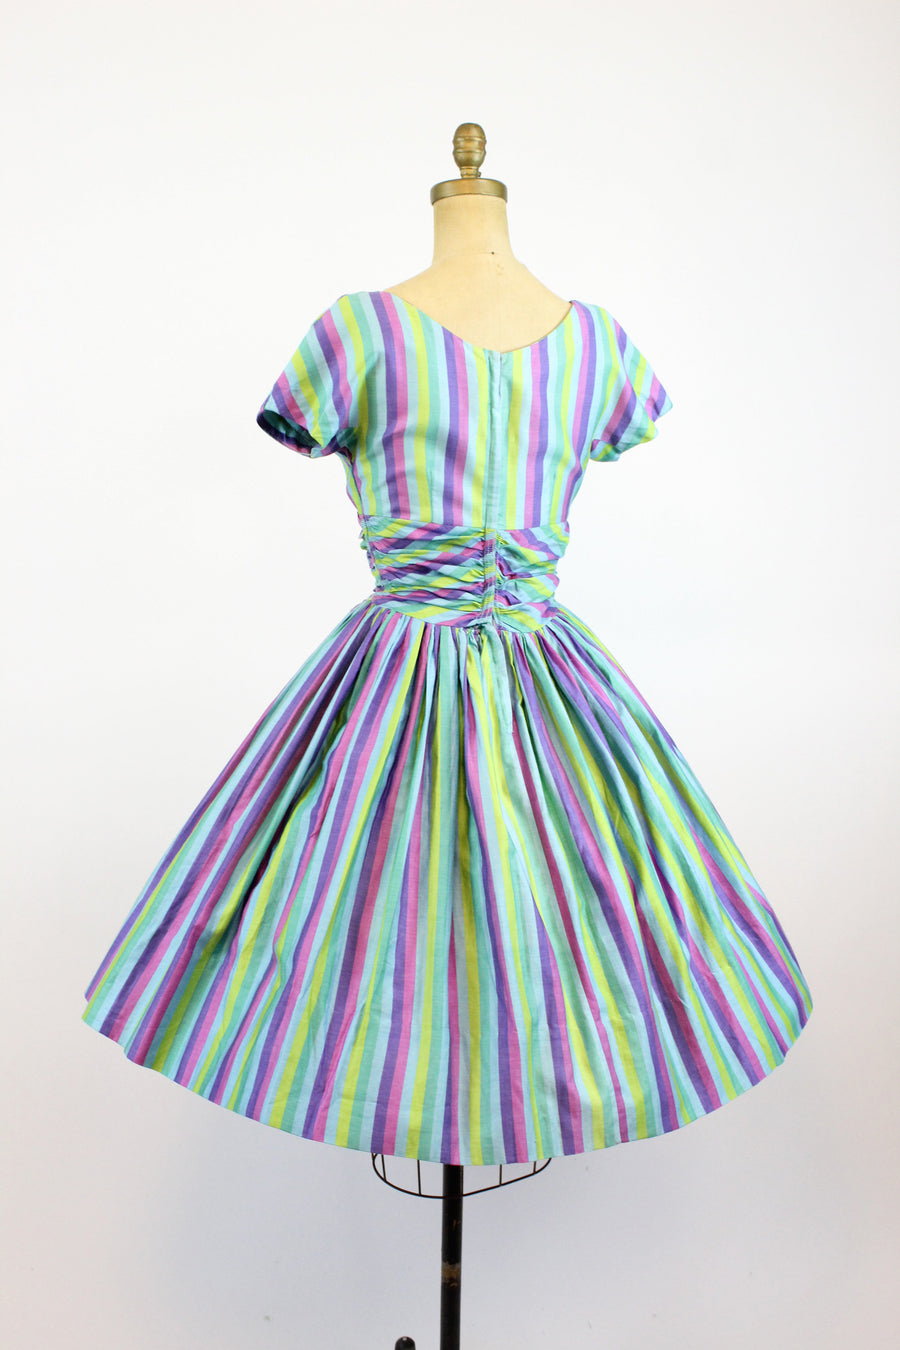 1950s Jonathan Logan dress small | vintage documented striped cotton dress | new in